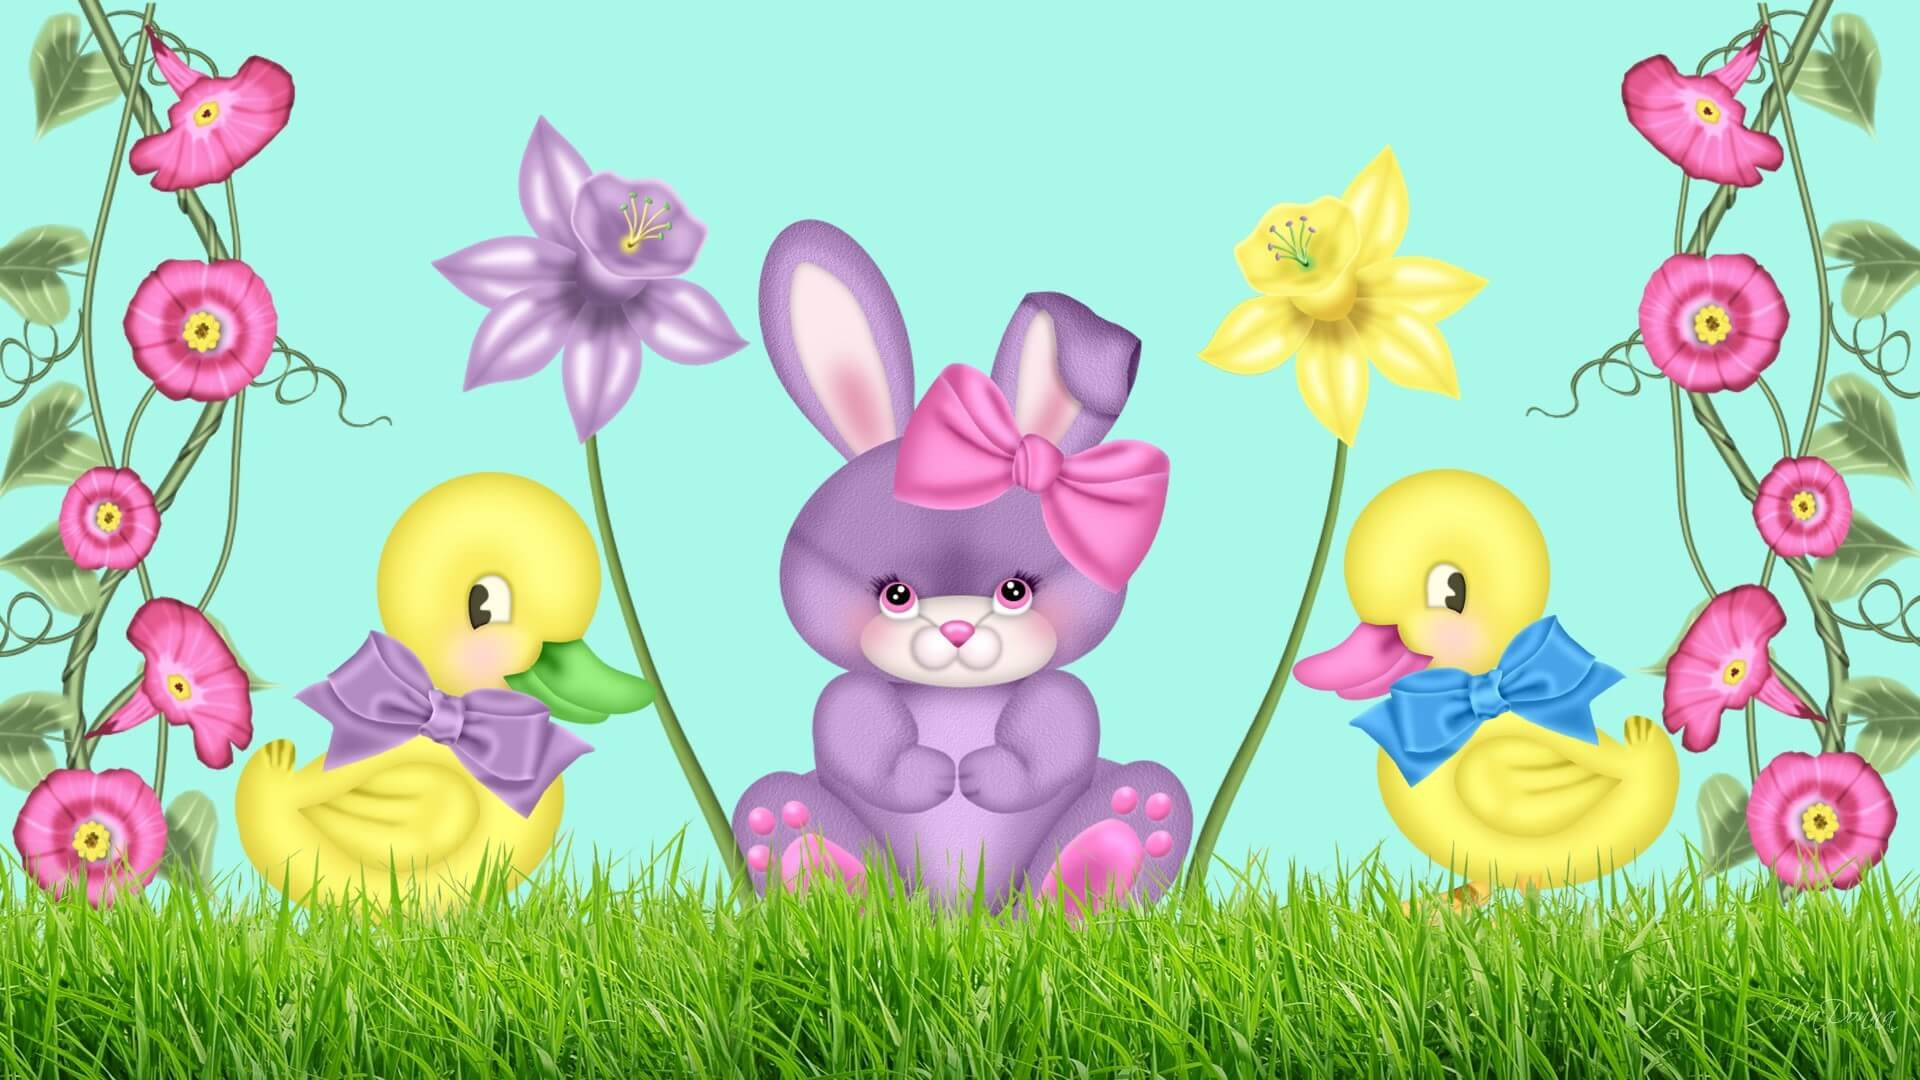 1920x1080 Happy Easter HD Wallpapers. Easter Backgrounds